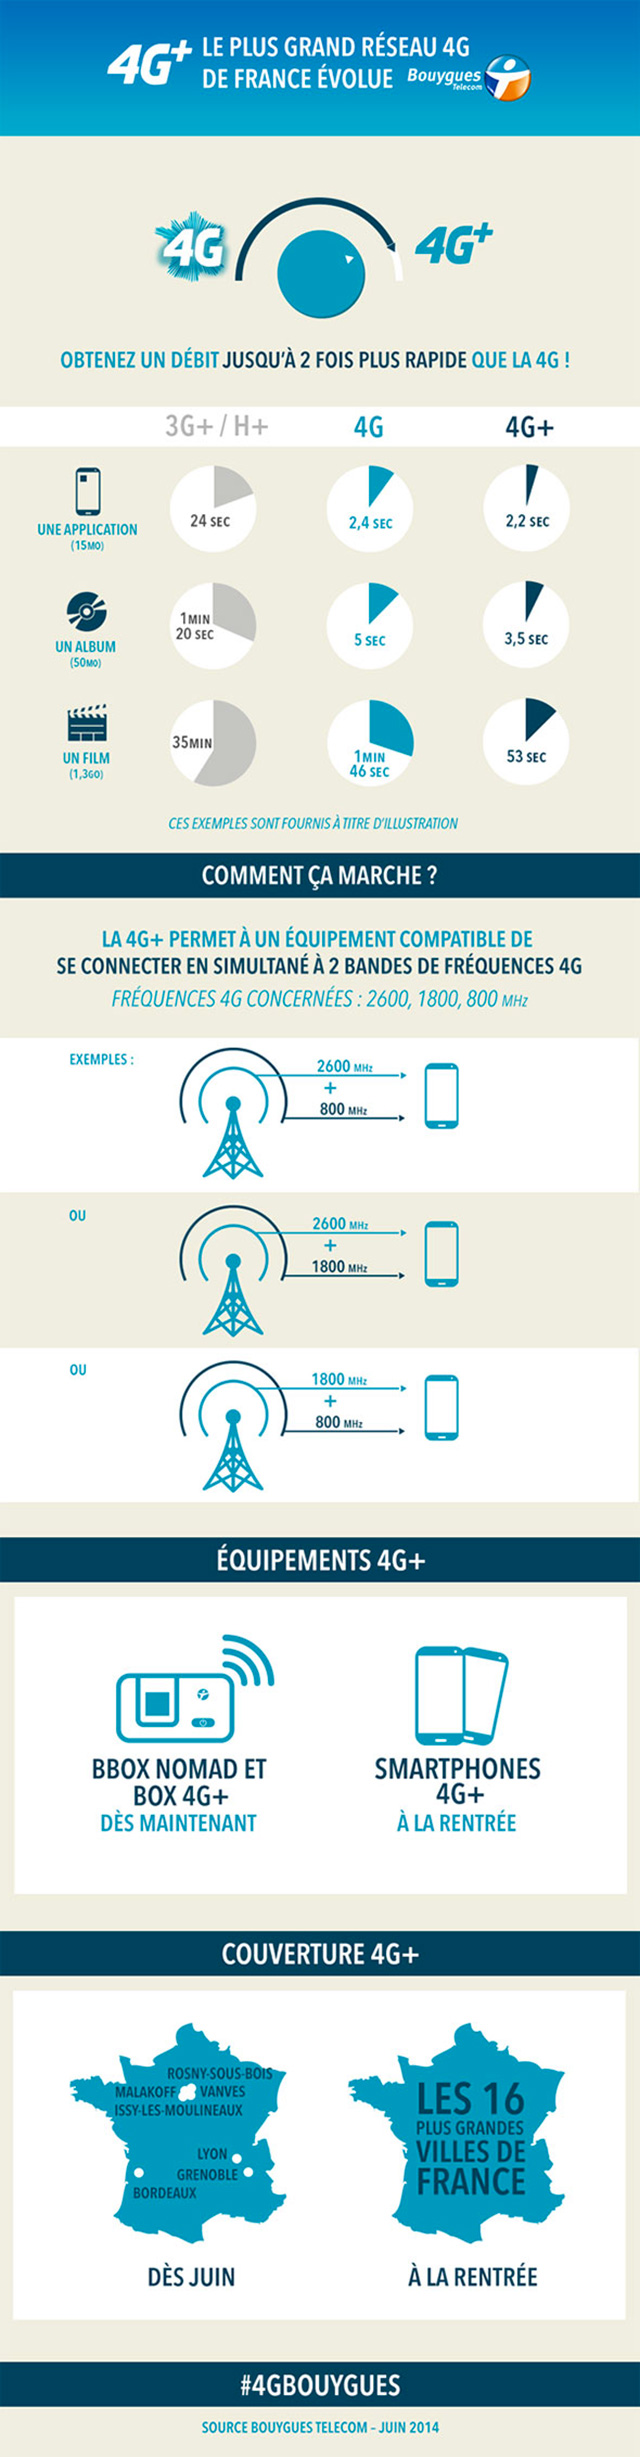 Infographie 4G+ Bouygues